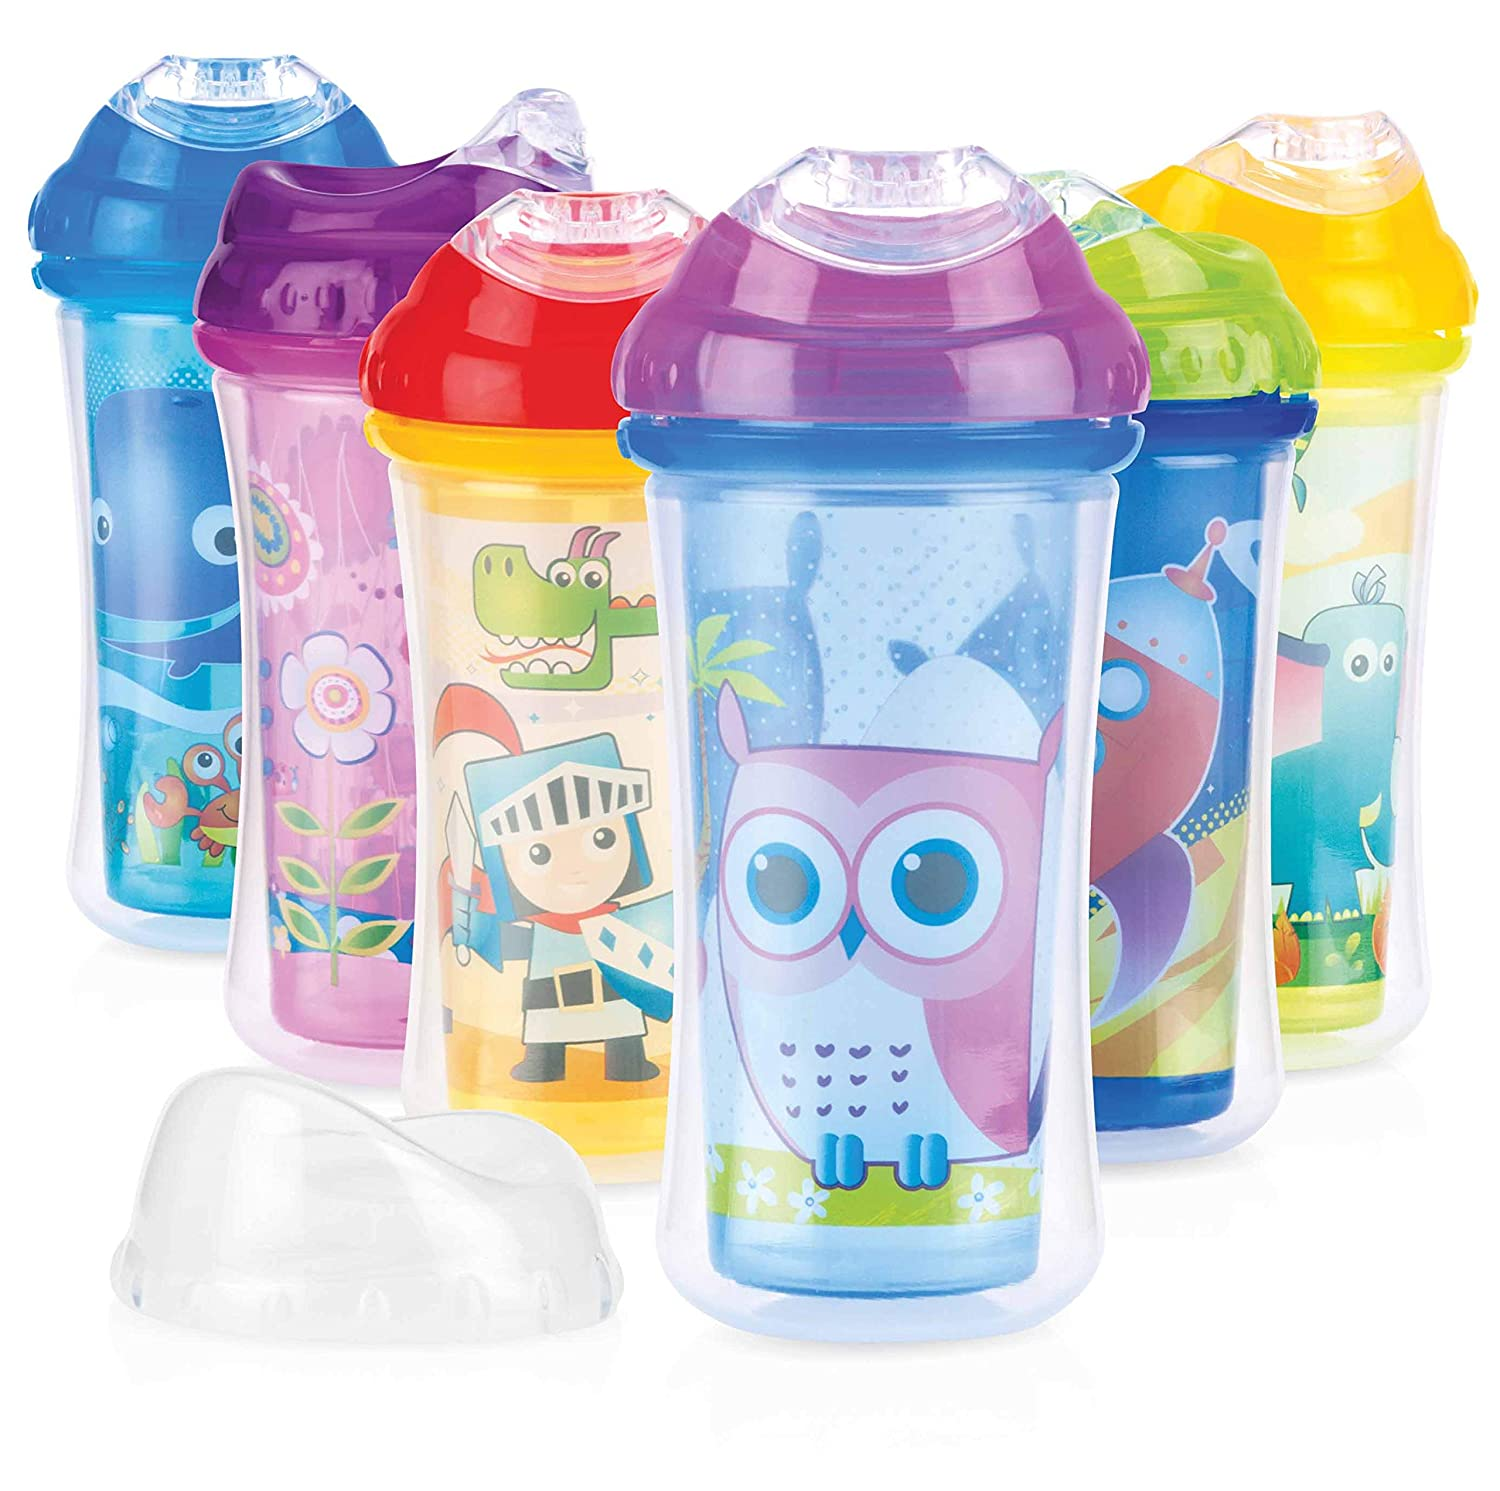 Nuby Clik-It Insulated Ultra Sipper Beaker made from Polypropylene, with Soft Non-Drip Spout, 270 ml, 18+ Months - Random Colours Nûby ID10188